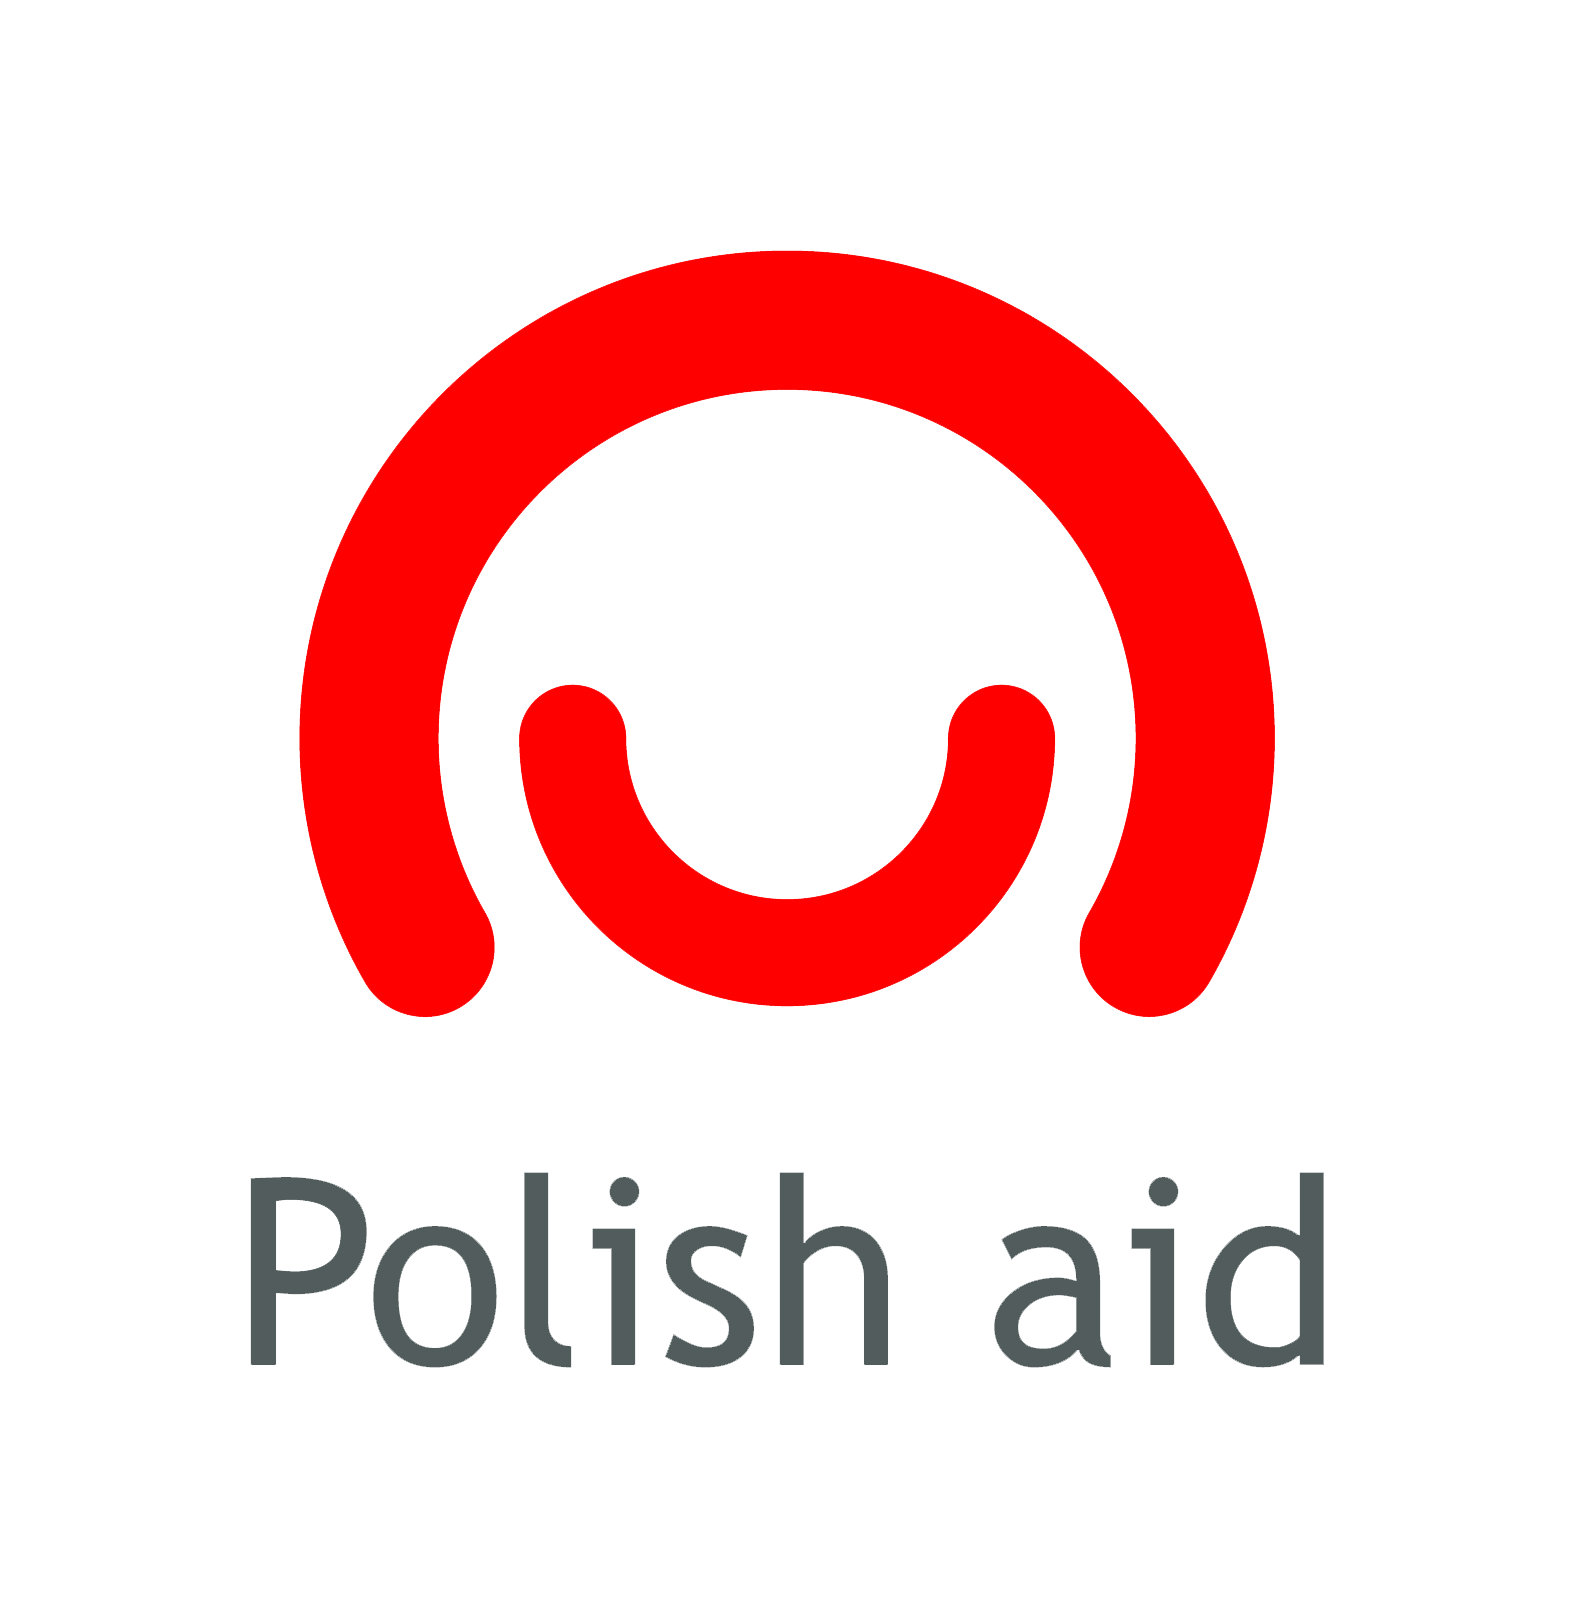 polishaid-logo2